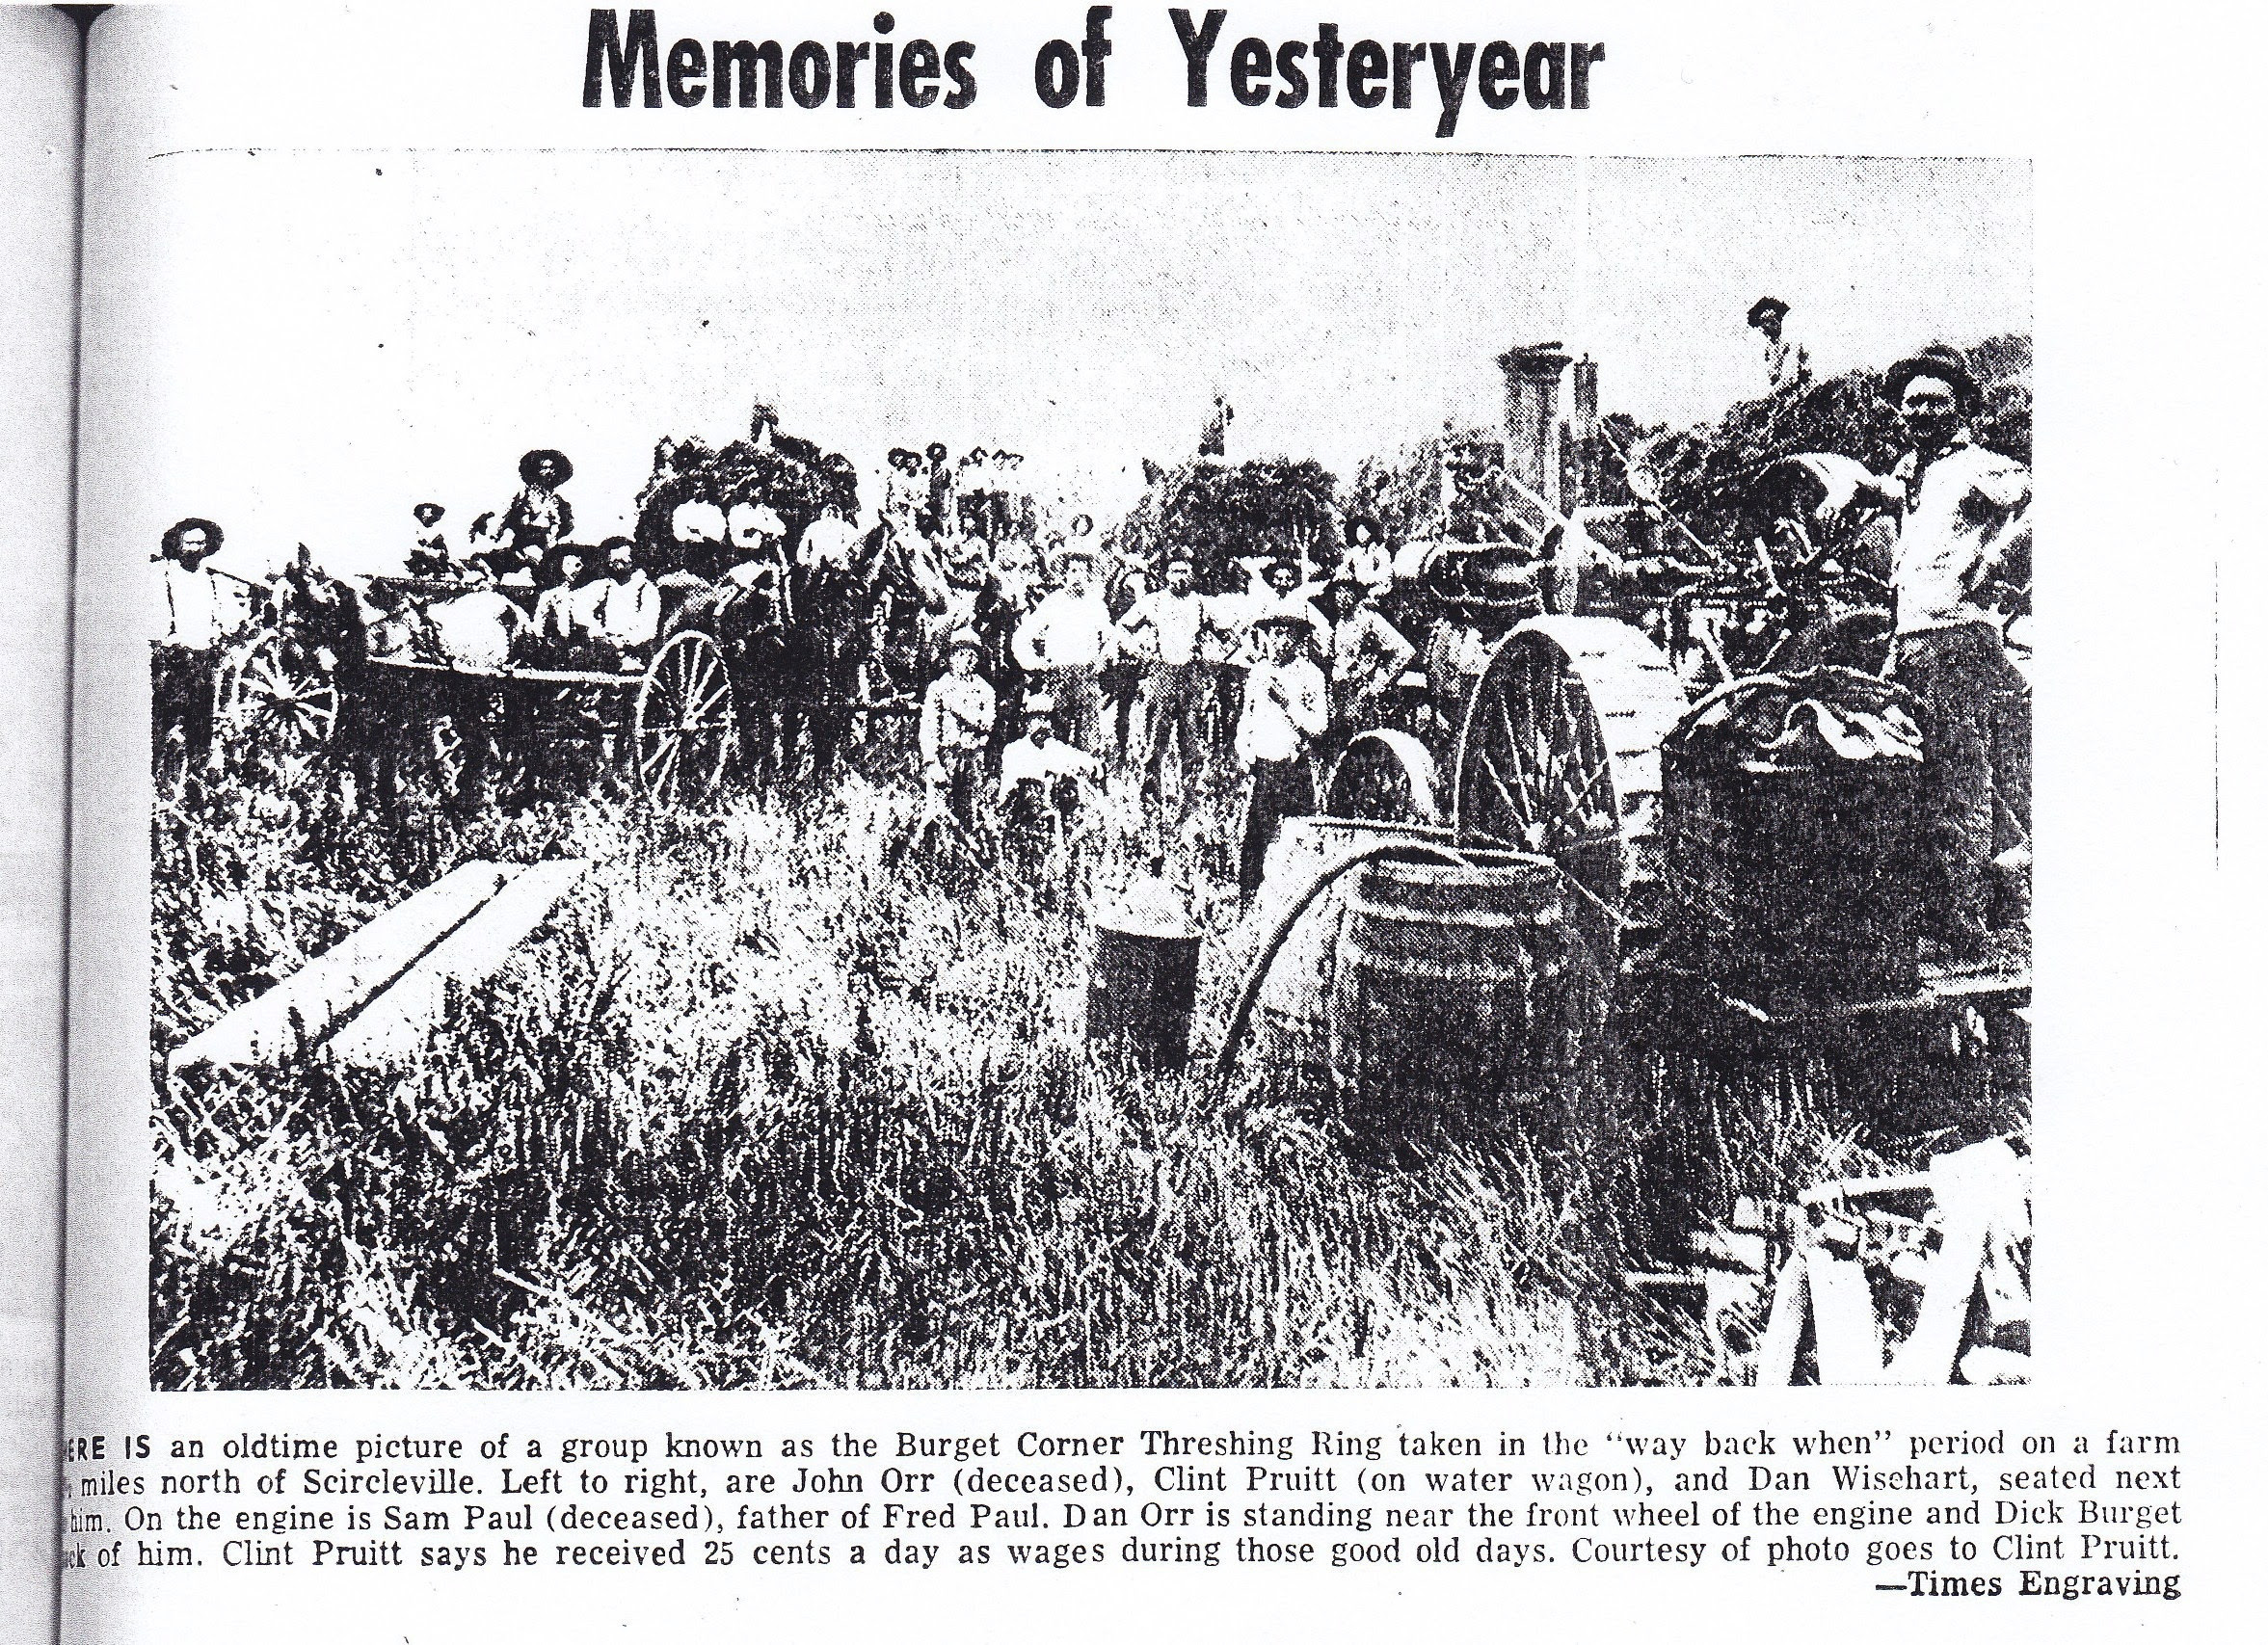 Image:Memories of Yesteryear - BsC Threshing.jpg